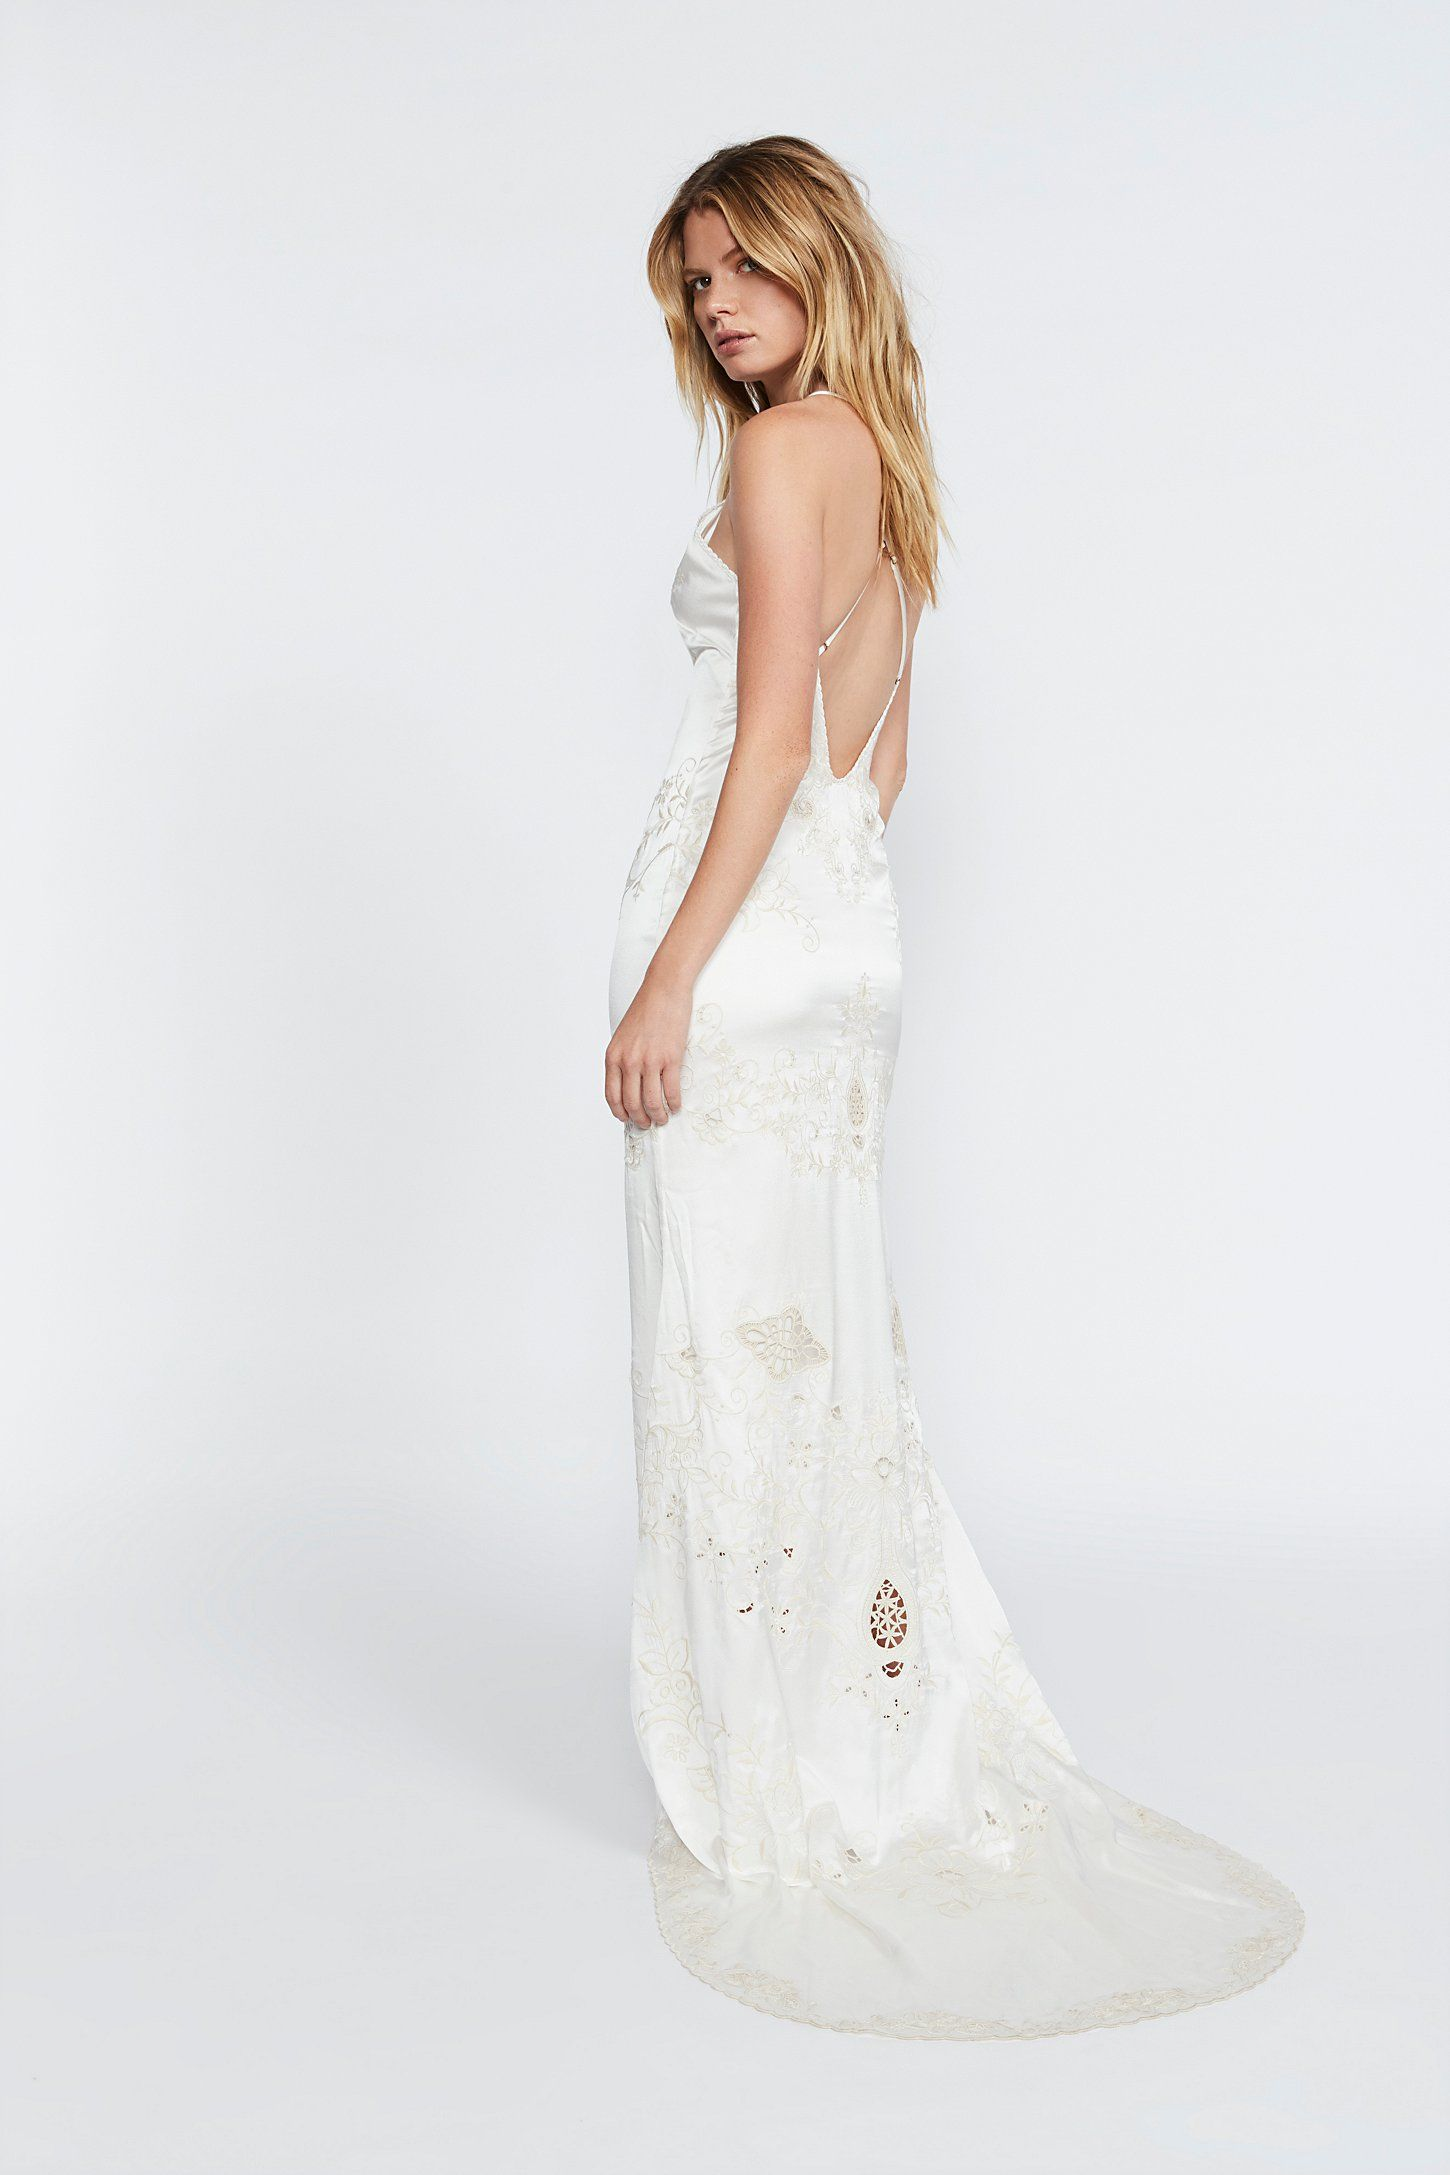 e4a1620e512 Shop our Odette Slip Dress at Free People.com. Share style pics with FP Me